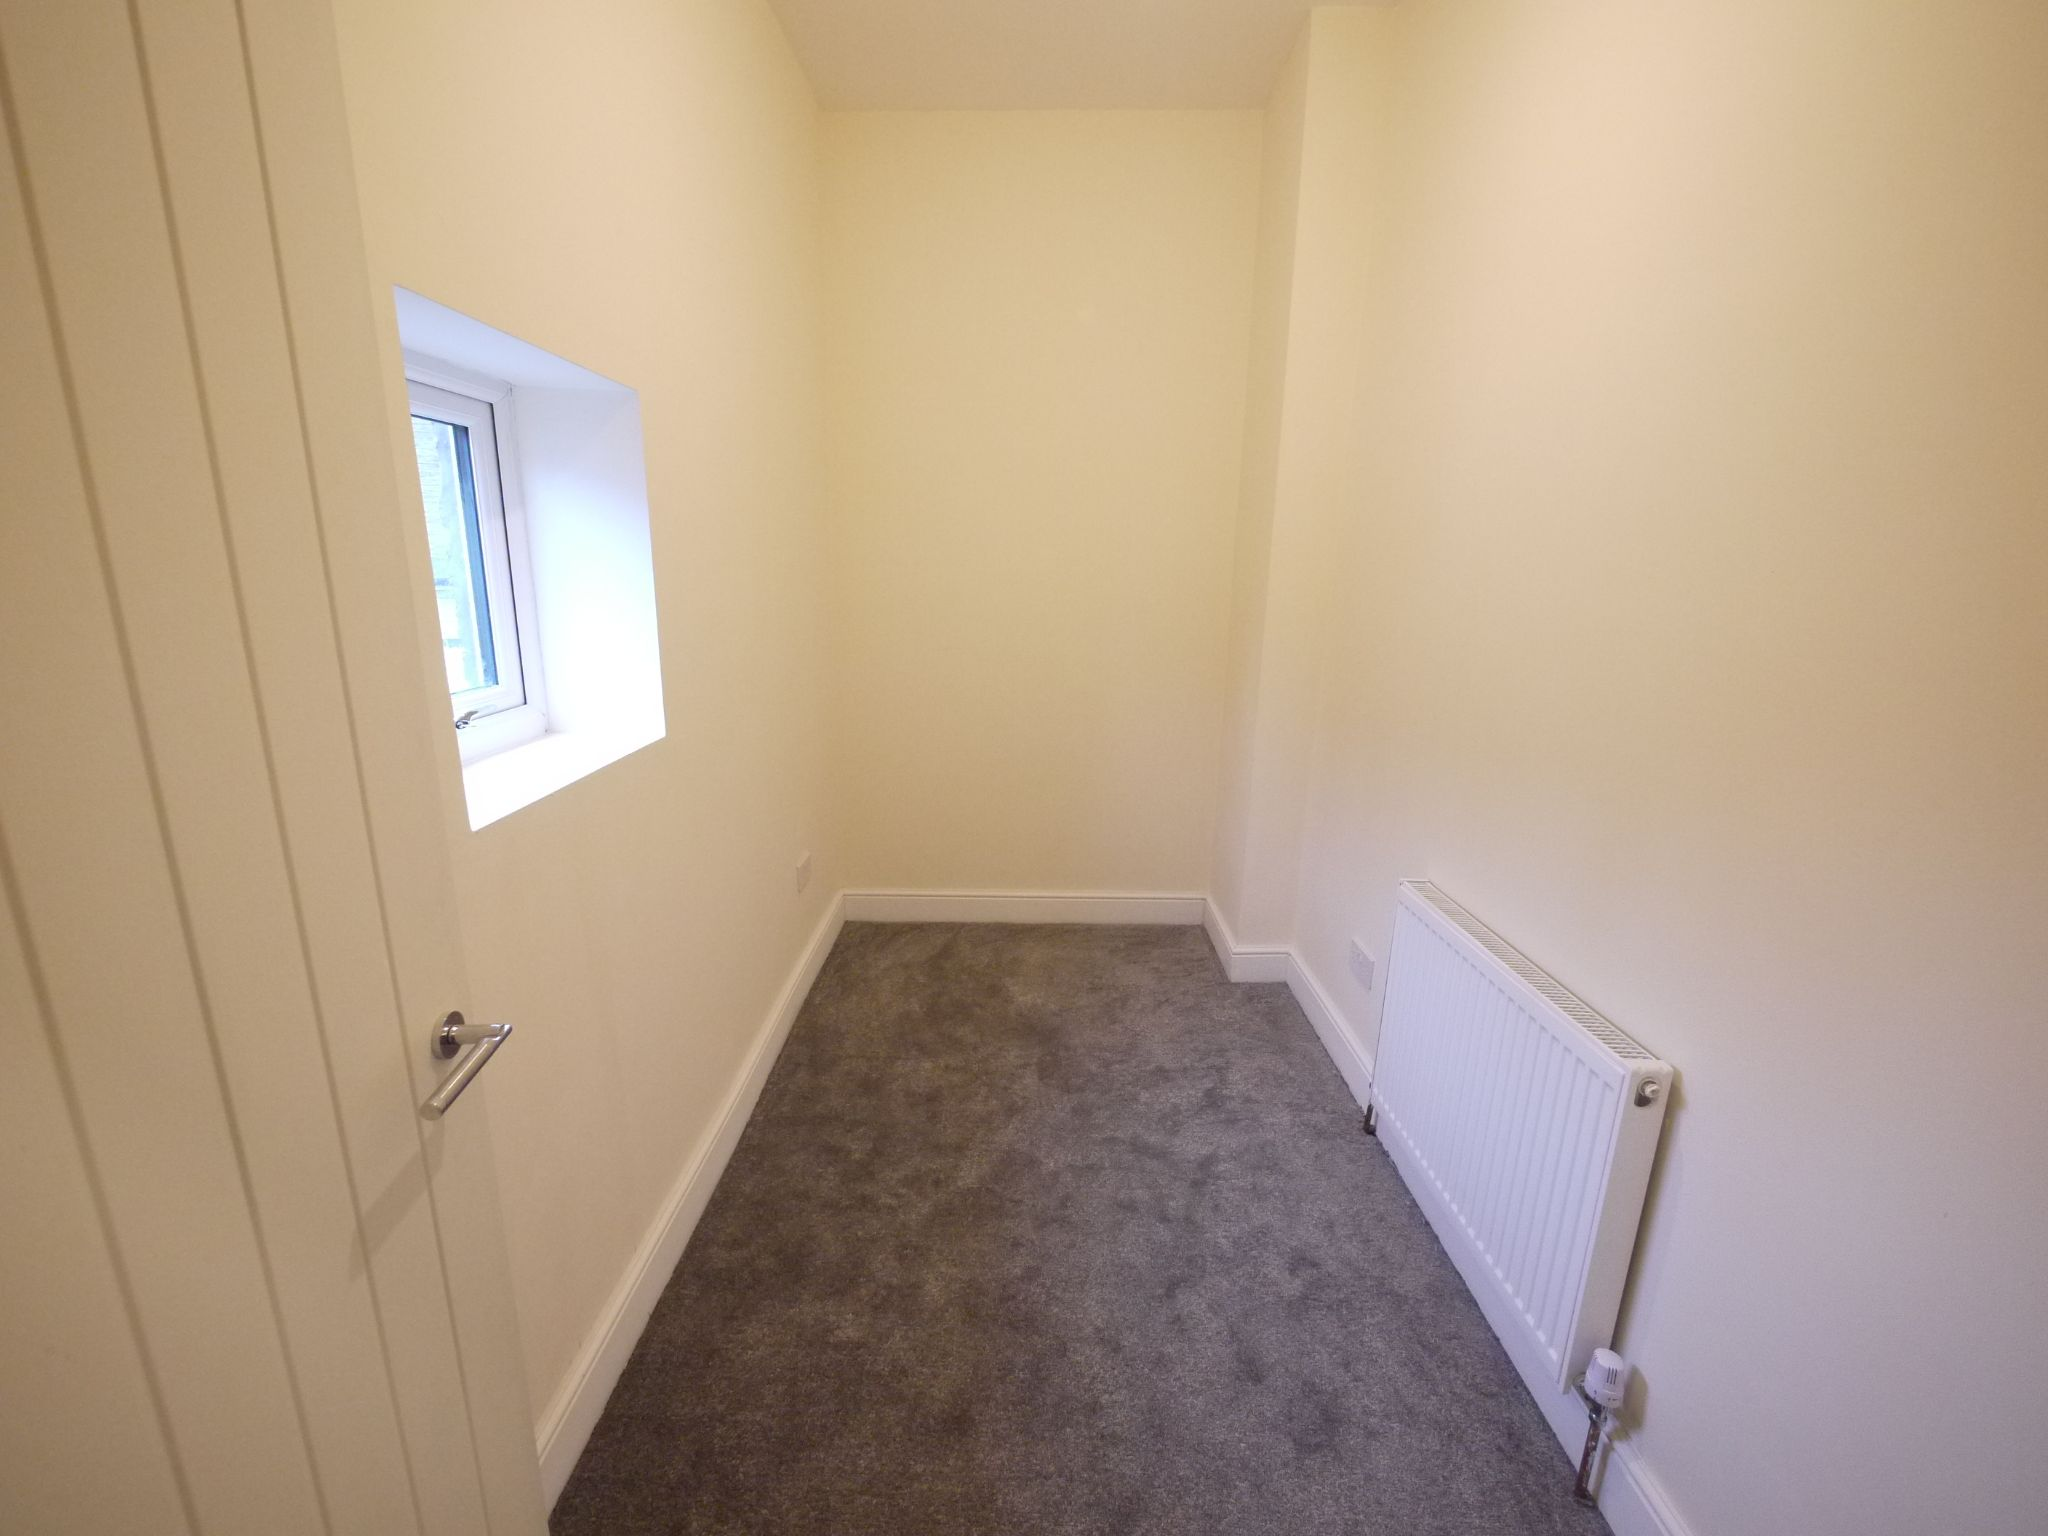 2 bedroom mid terraced house For Sale in Brighouse - Bedroom 2.